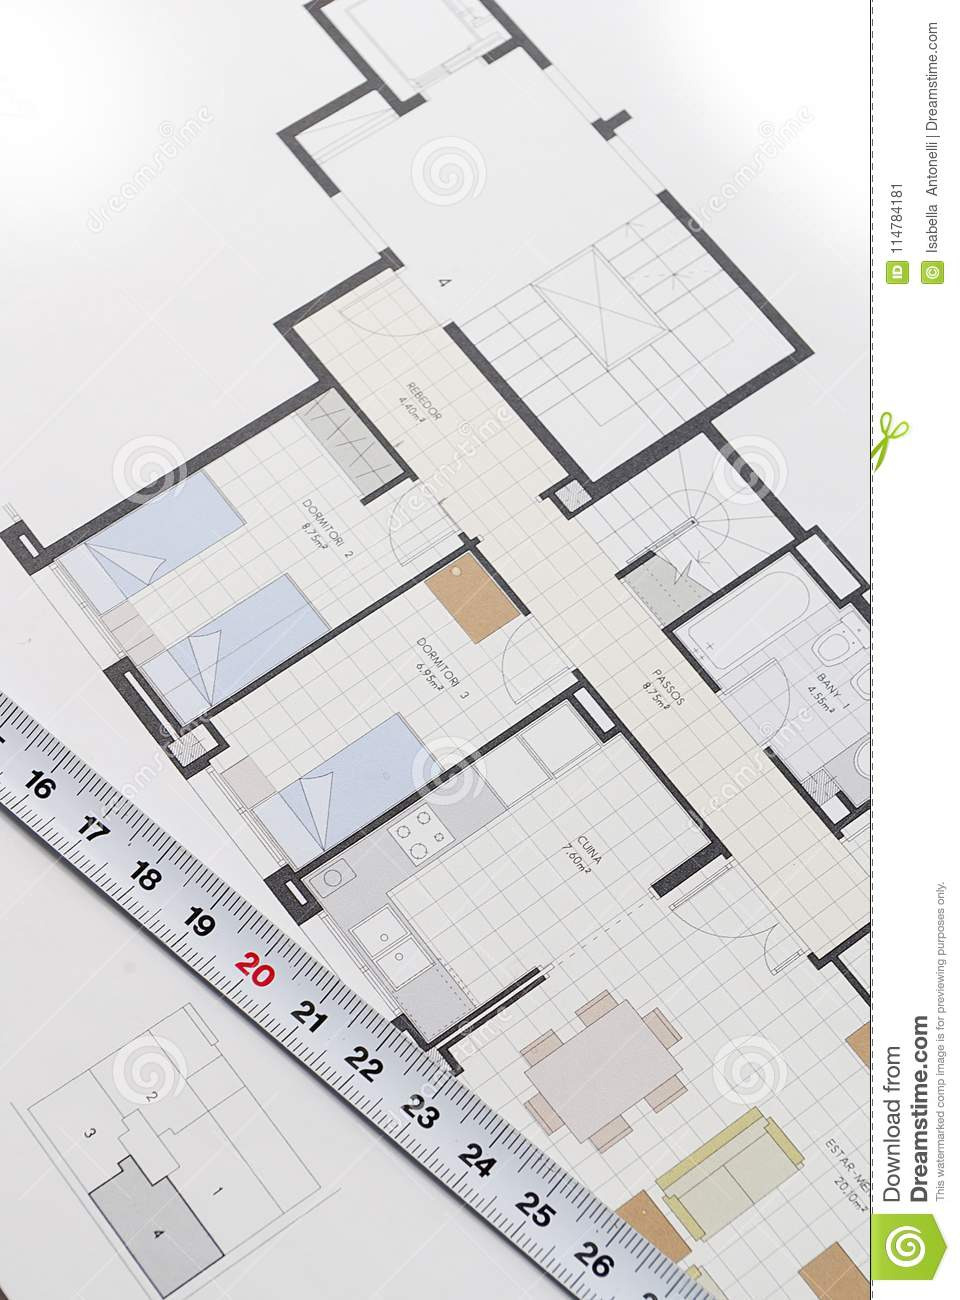 Plan for Building A House Inspirational Architectural Plan for Building A House Stock Image Image